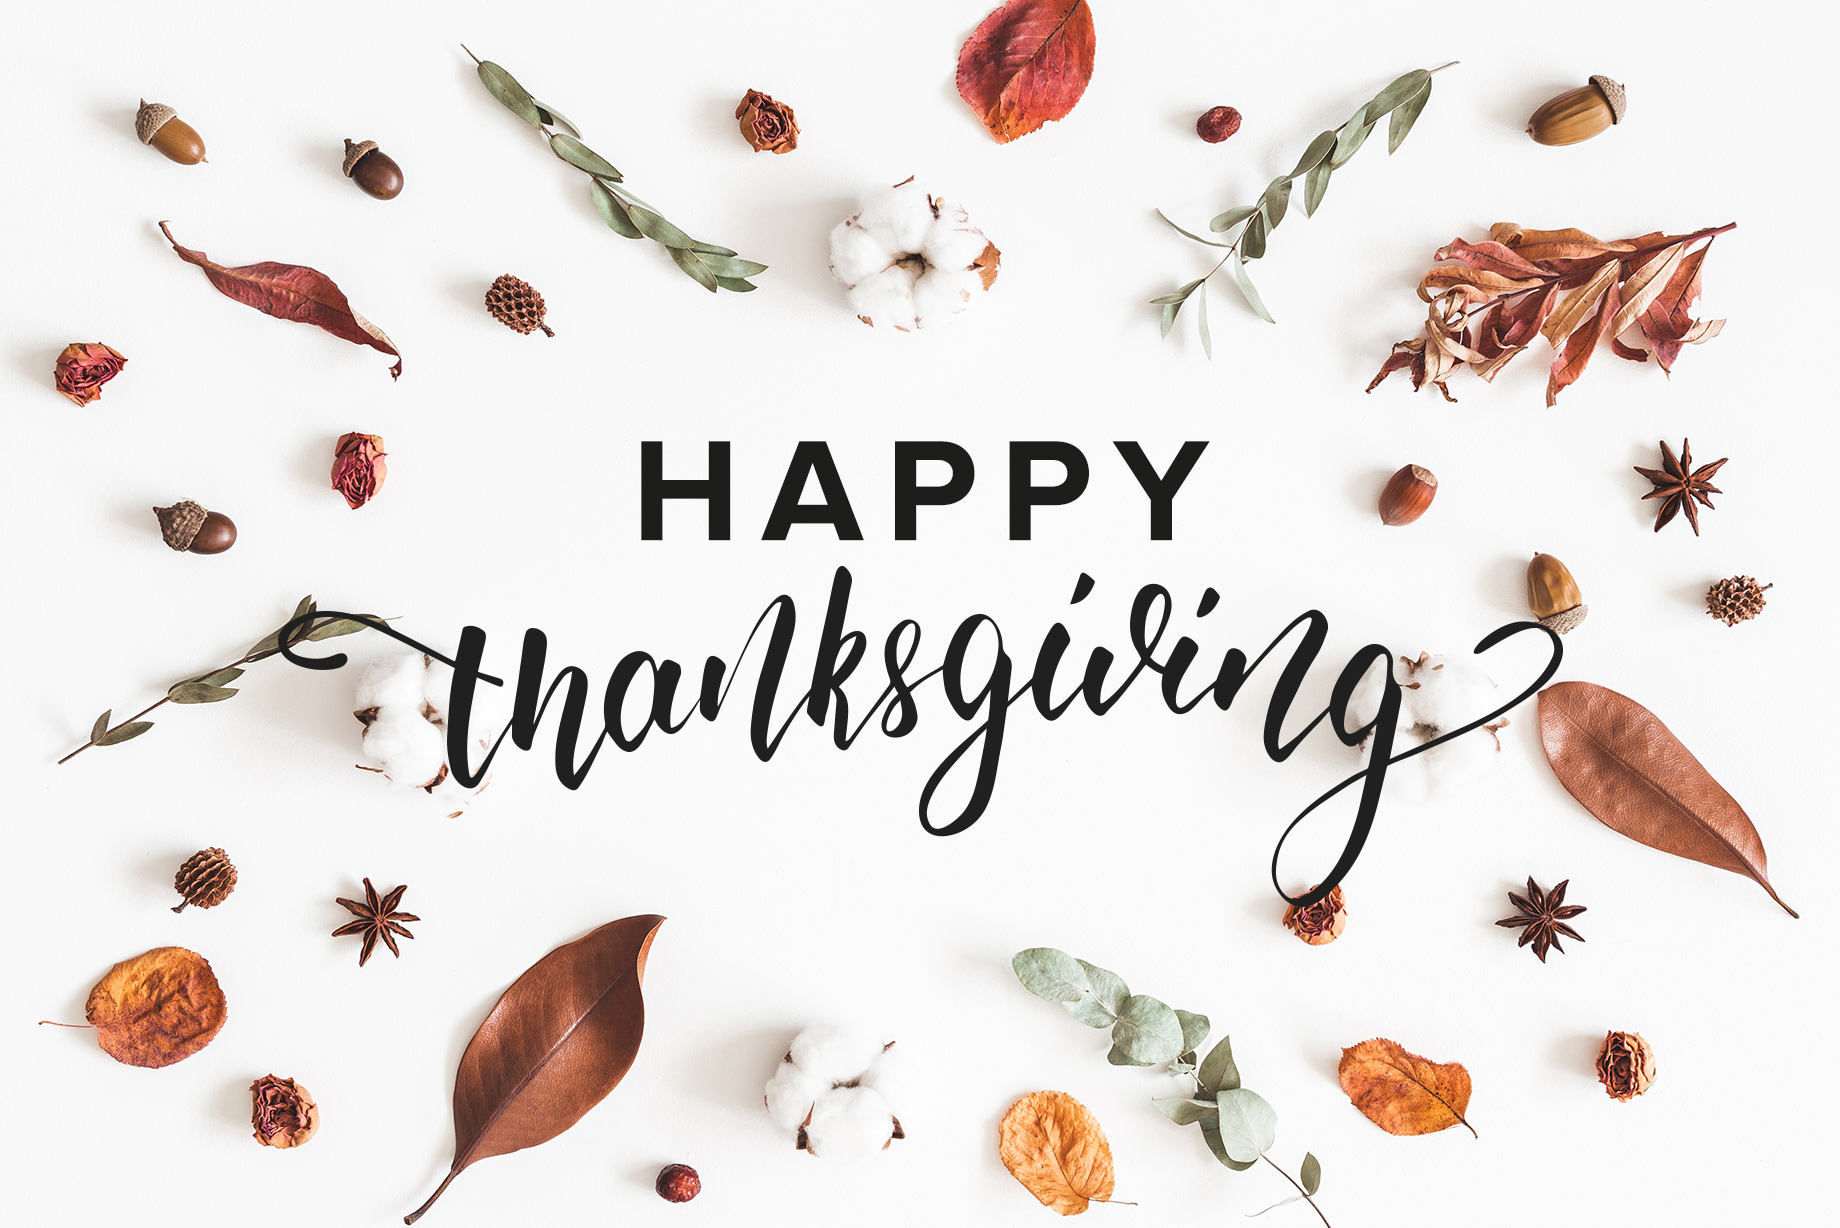 Happy Thanksgiving from Scentbird🍂